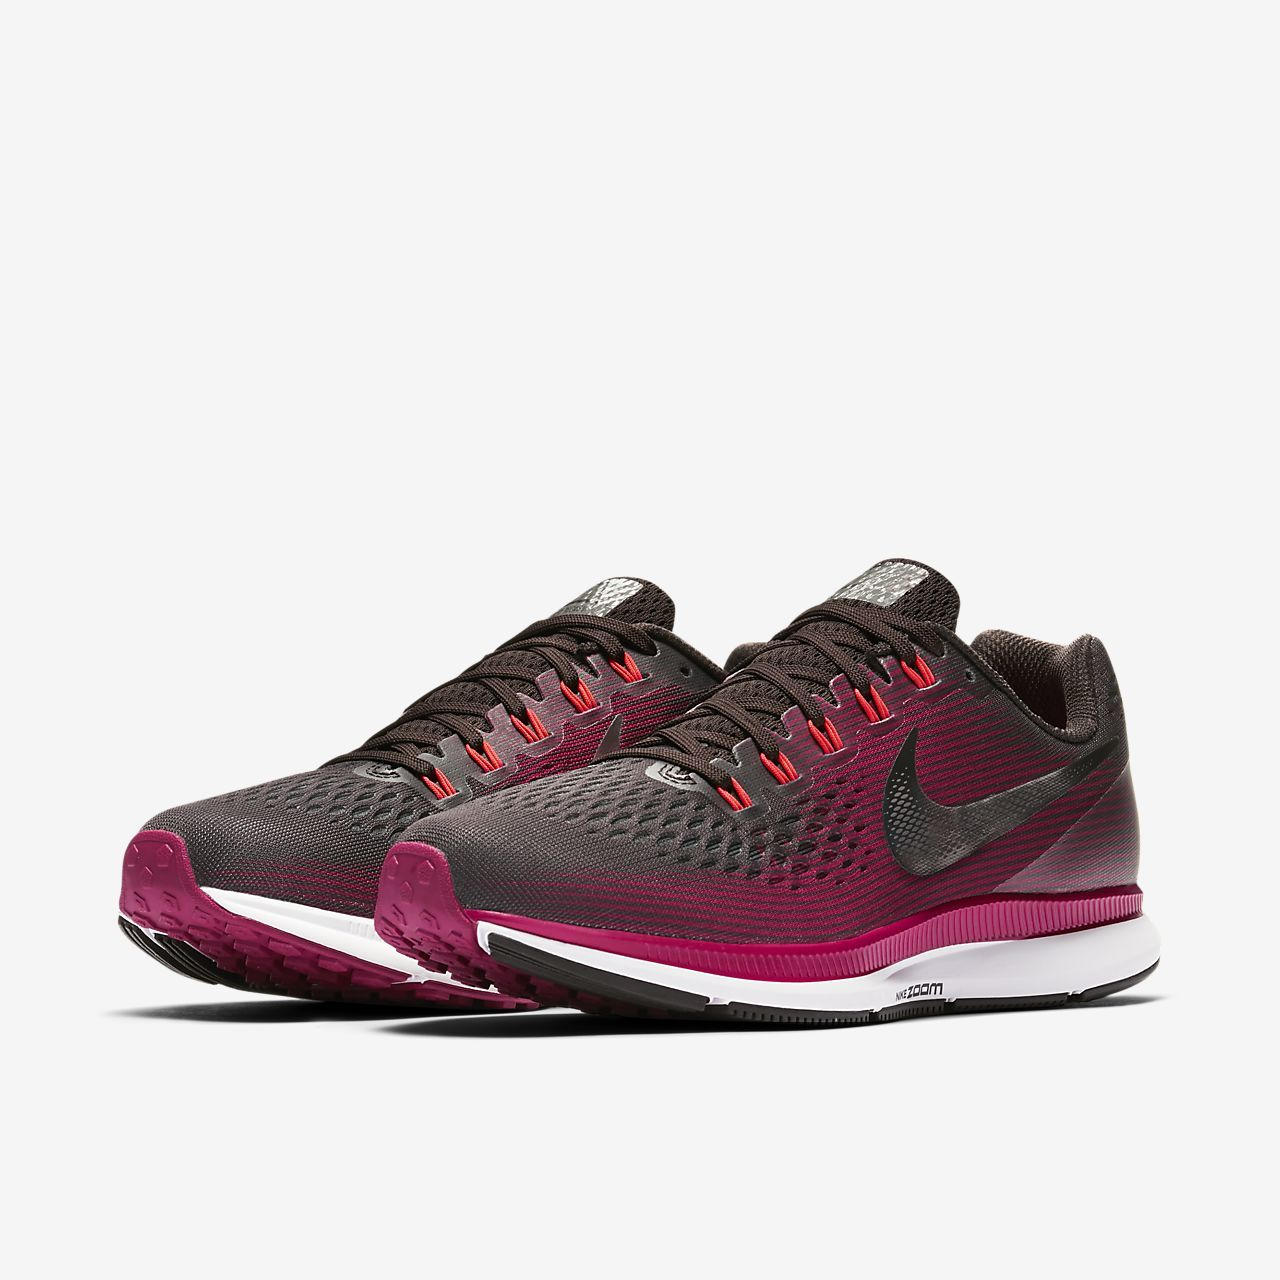 c34f2bb46c4b2 ... nike air zoom pegasus 34 gem womens running shoe shadow brown rush  maroon